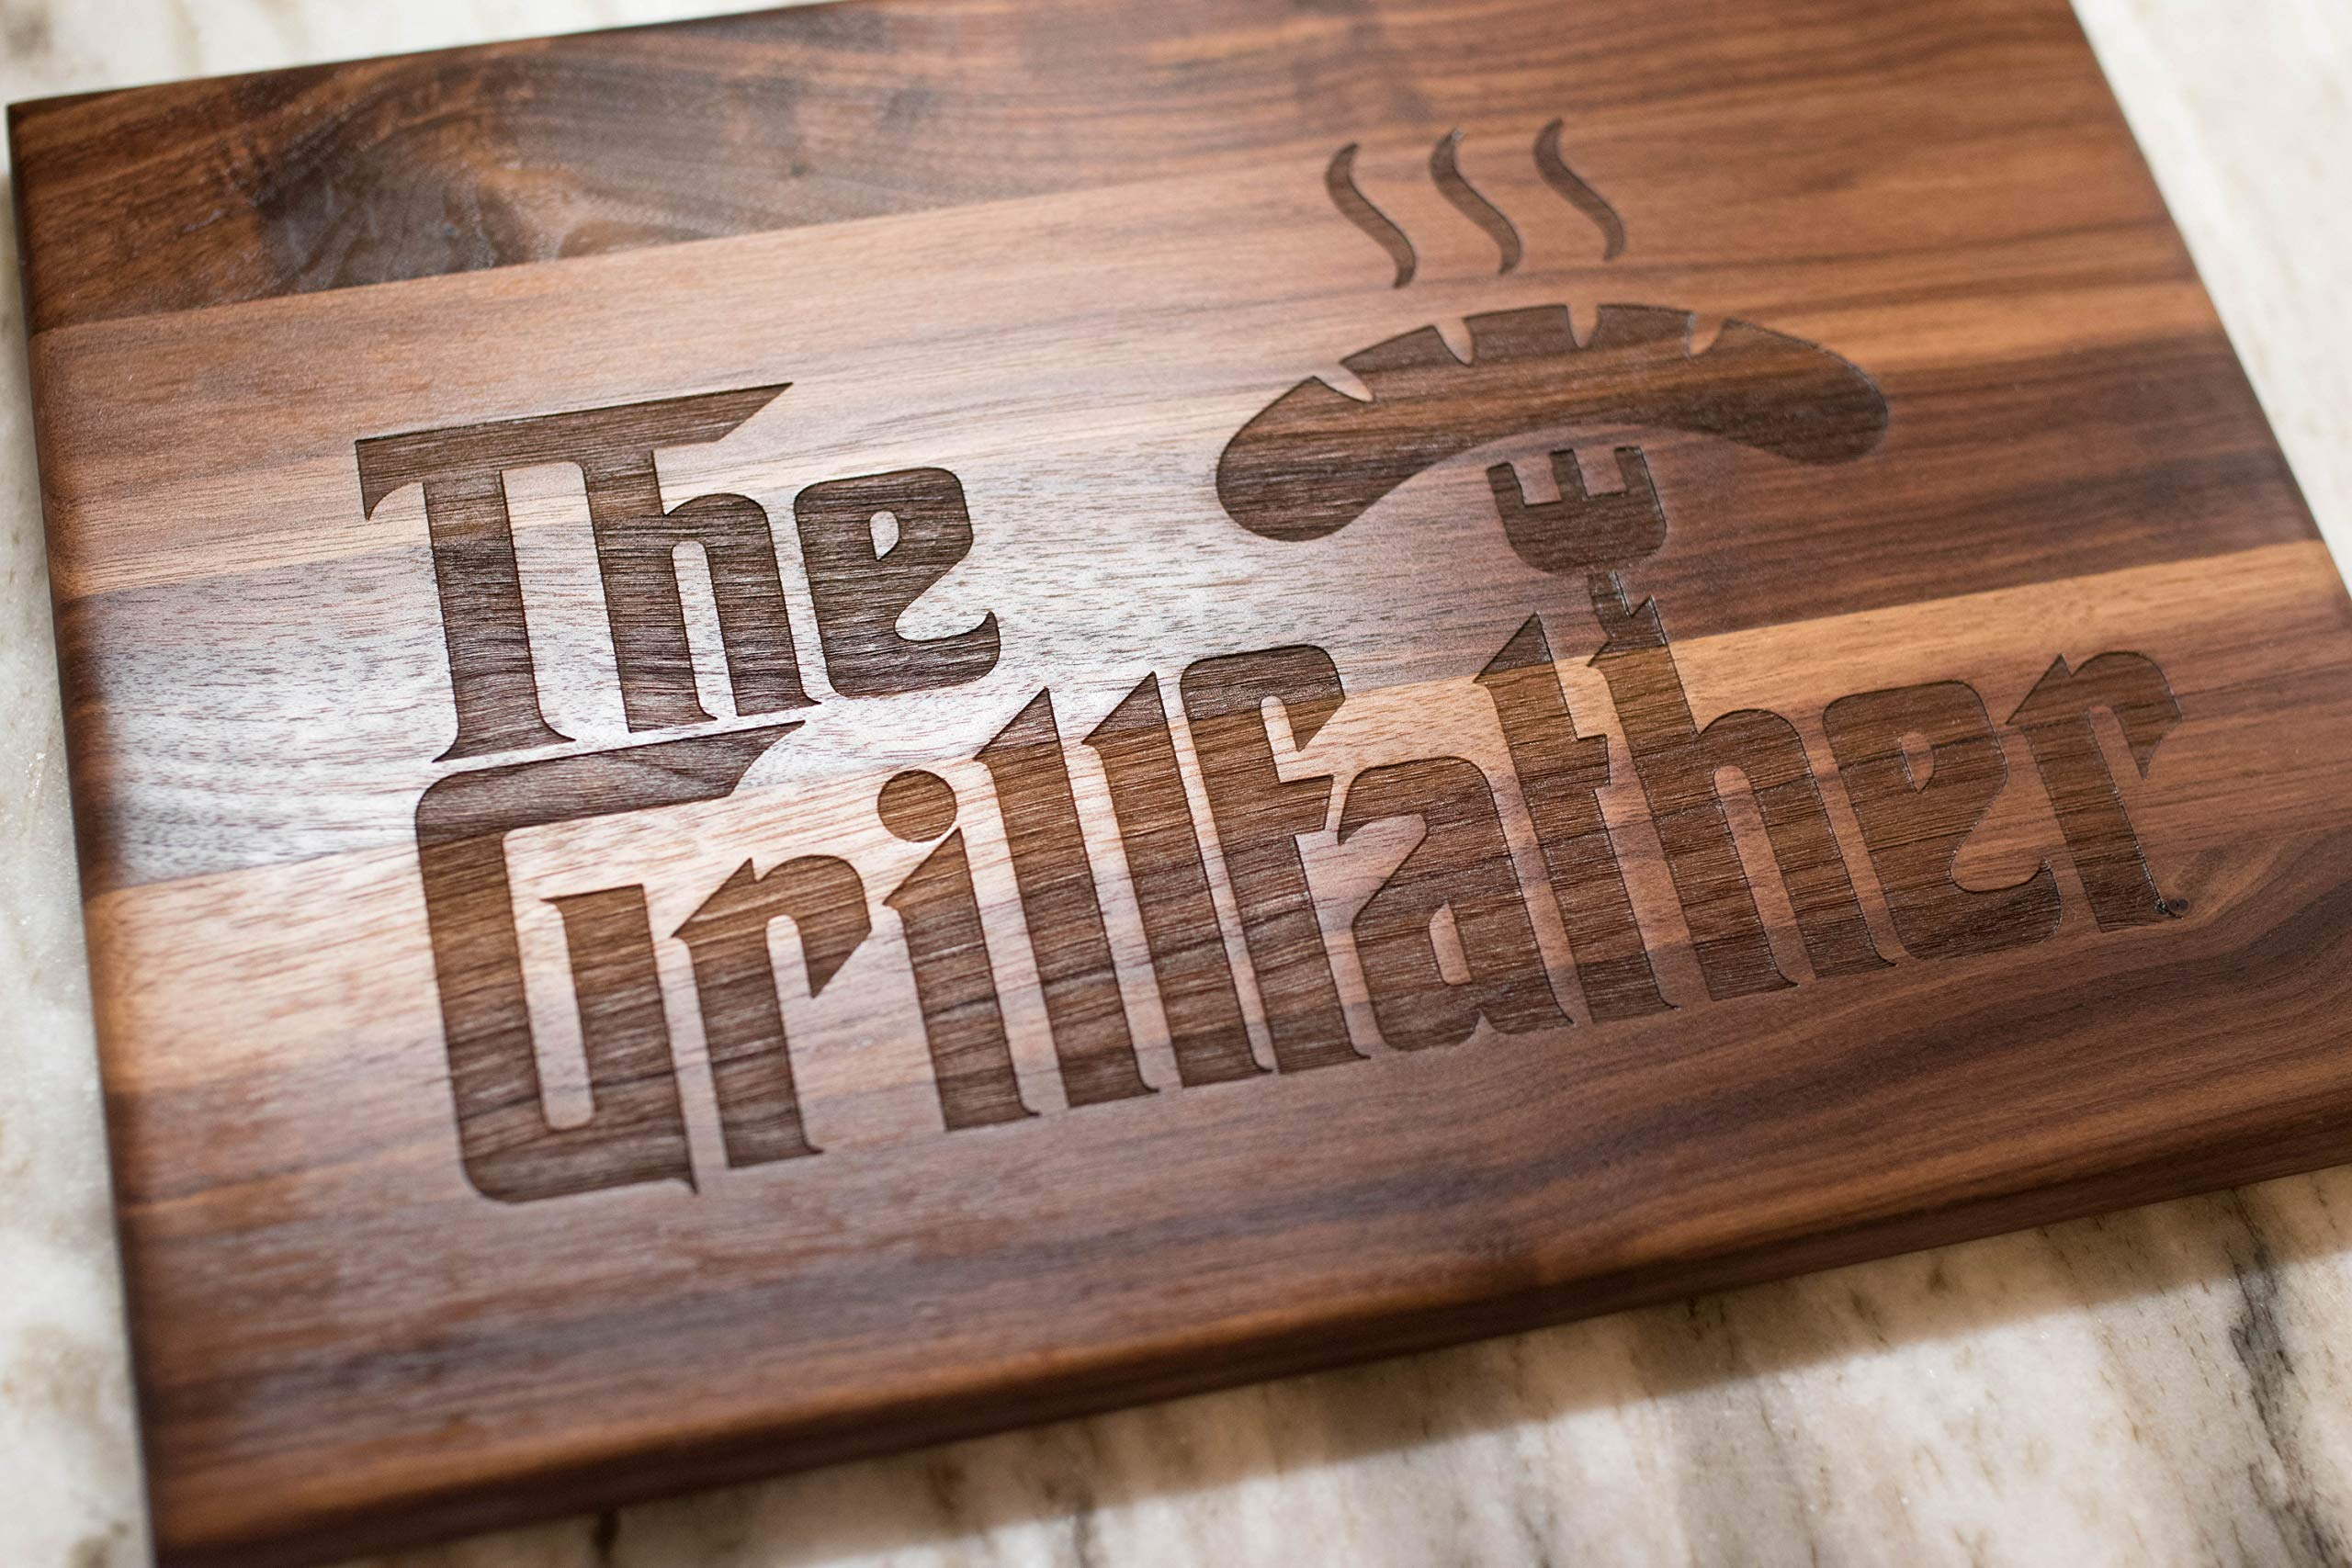 Father's Day Gift for Dad - USA Made Walnut Wood Cutting Board - The Grillfather Cutting Board is a perfect gift for Dad, Stepfather gift, and grandfather gift.